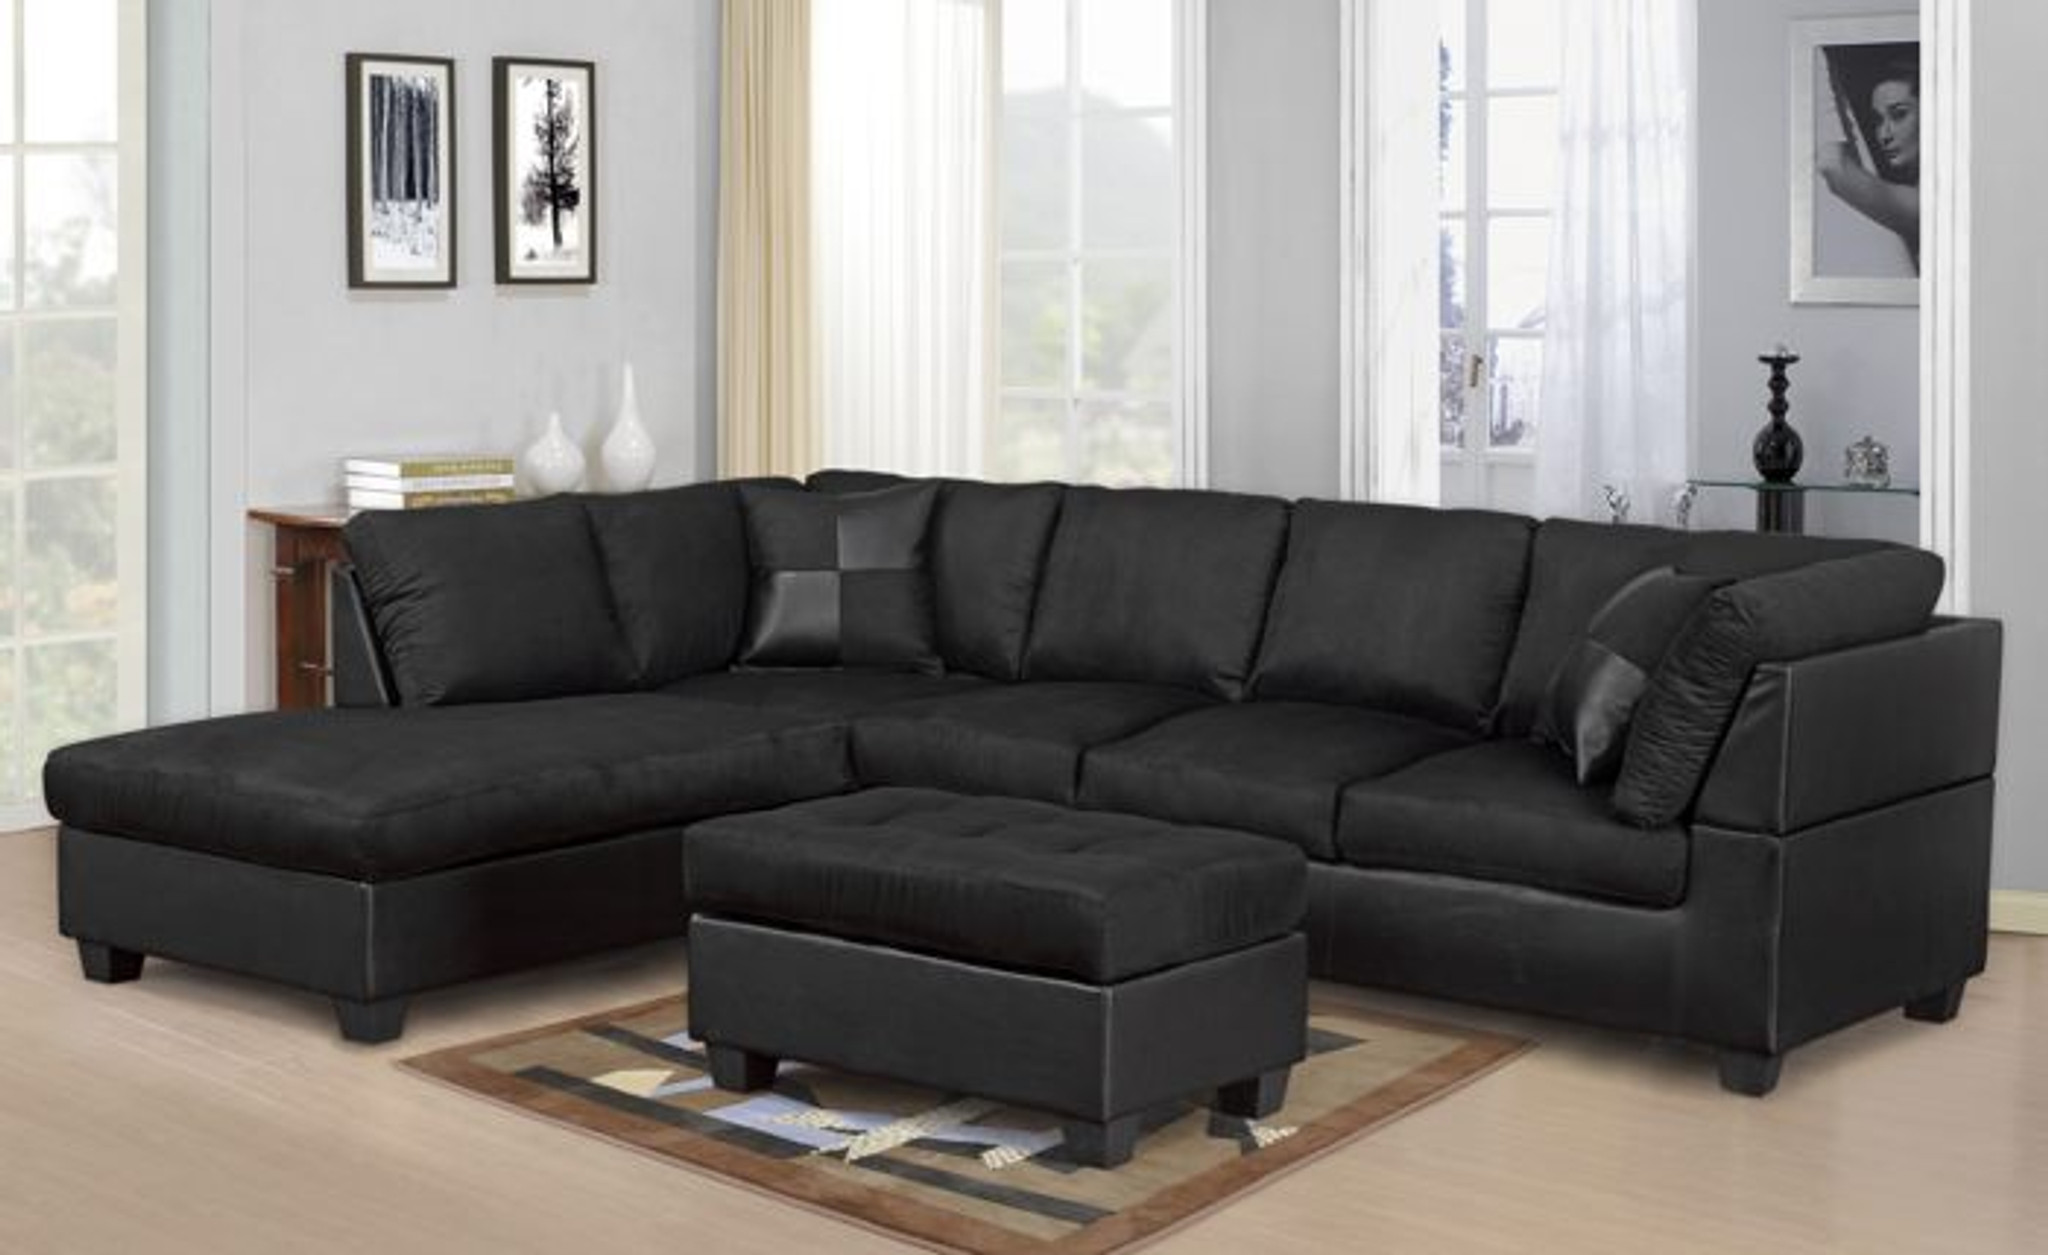 Modern 2 Pcs Cypress Black Color Sectional Sofa And Chaise Set Km Home Furniture